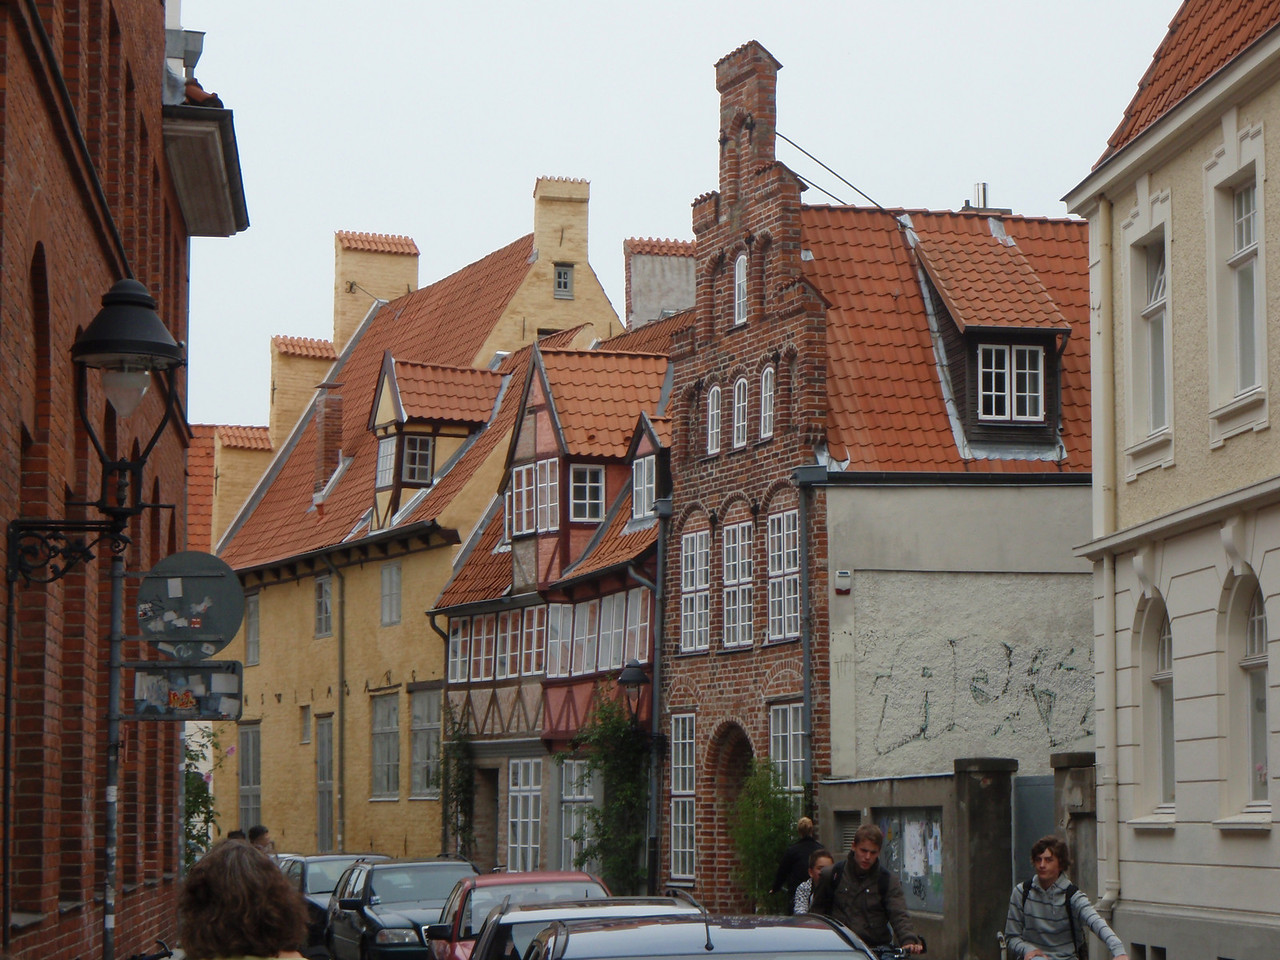 Hansa architecture in Lubeck